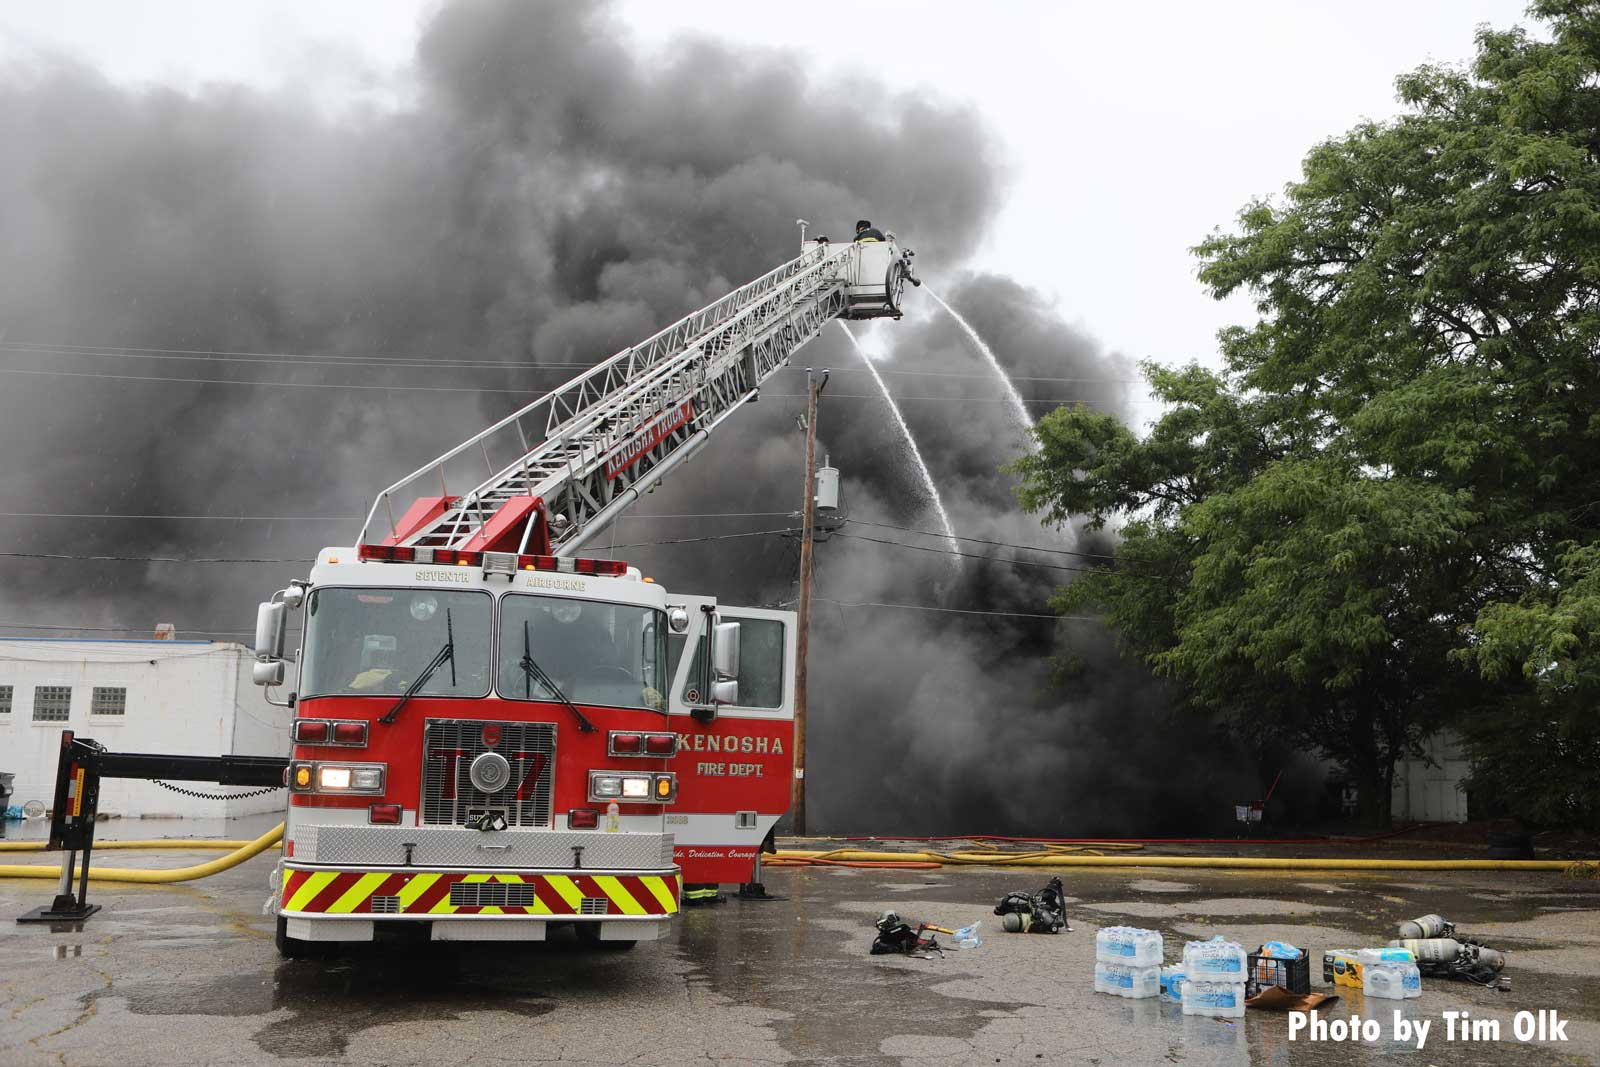 Elevated master stream use as smoke rises from structure